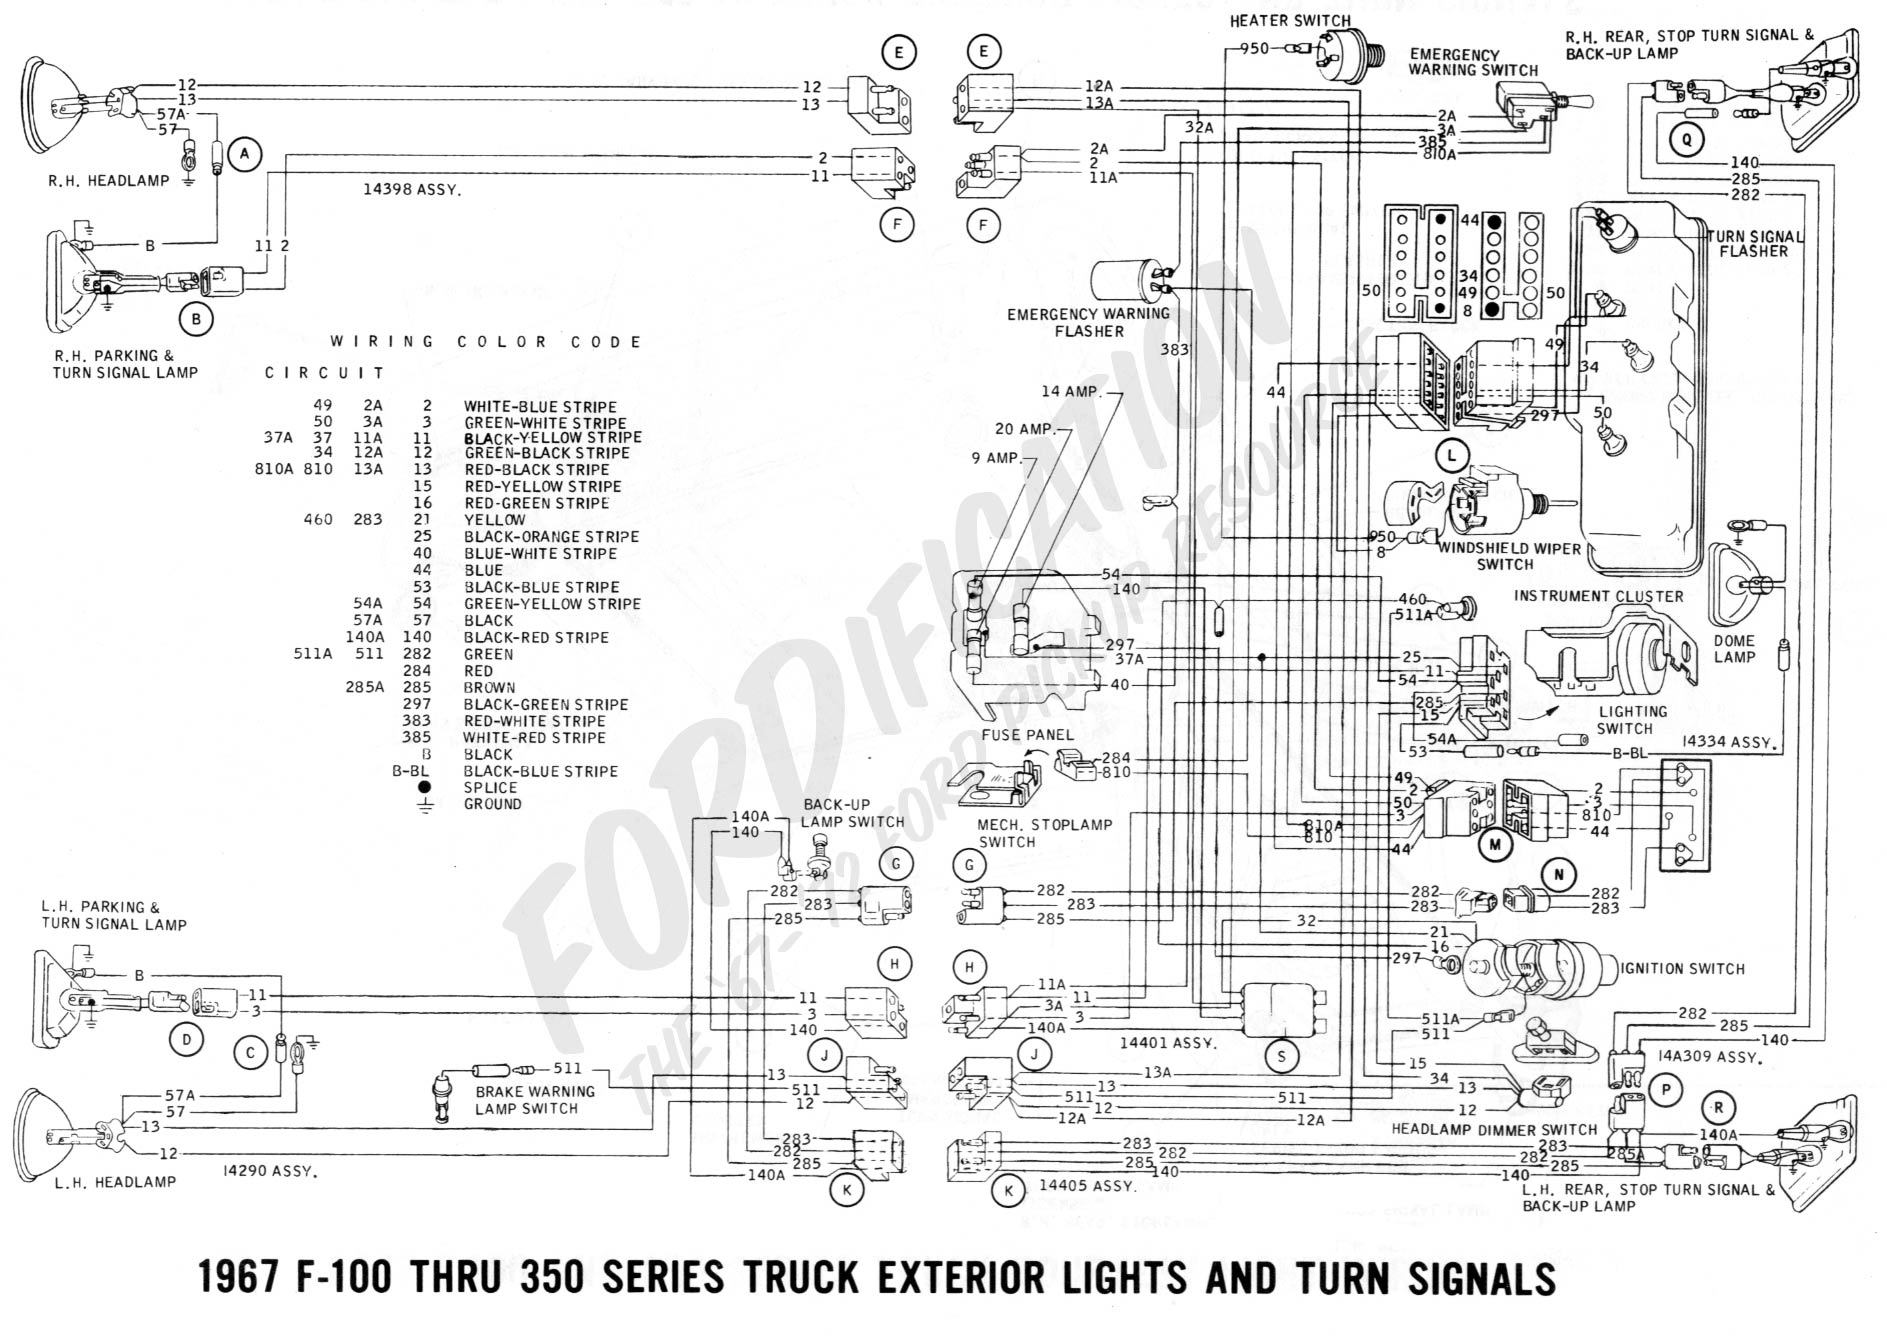 80 1967_exterior_lights_and_turn_signals_page_2_1db6c529c4c9567560e56d6320f993290ba5b803 1967 mustang wiring diagram efcaviation com 1966 mustang wiring diagrams at n-0.co